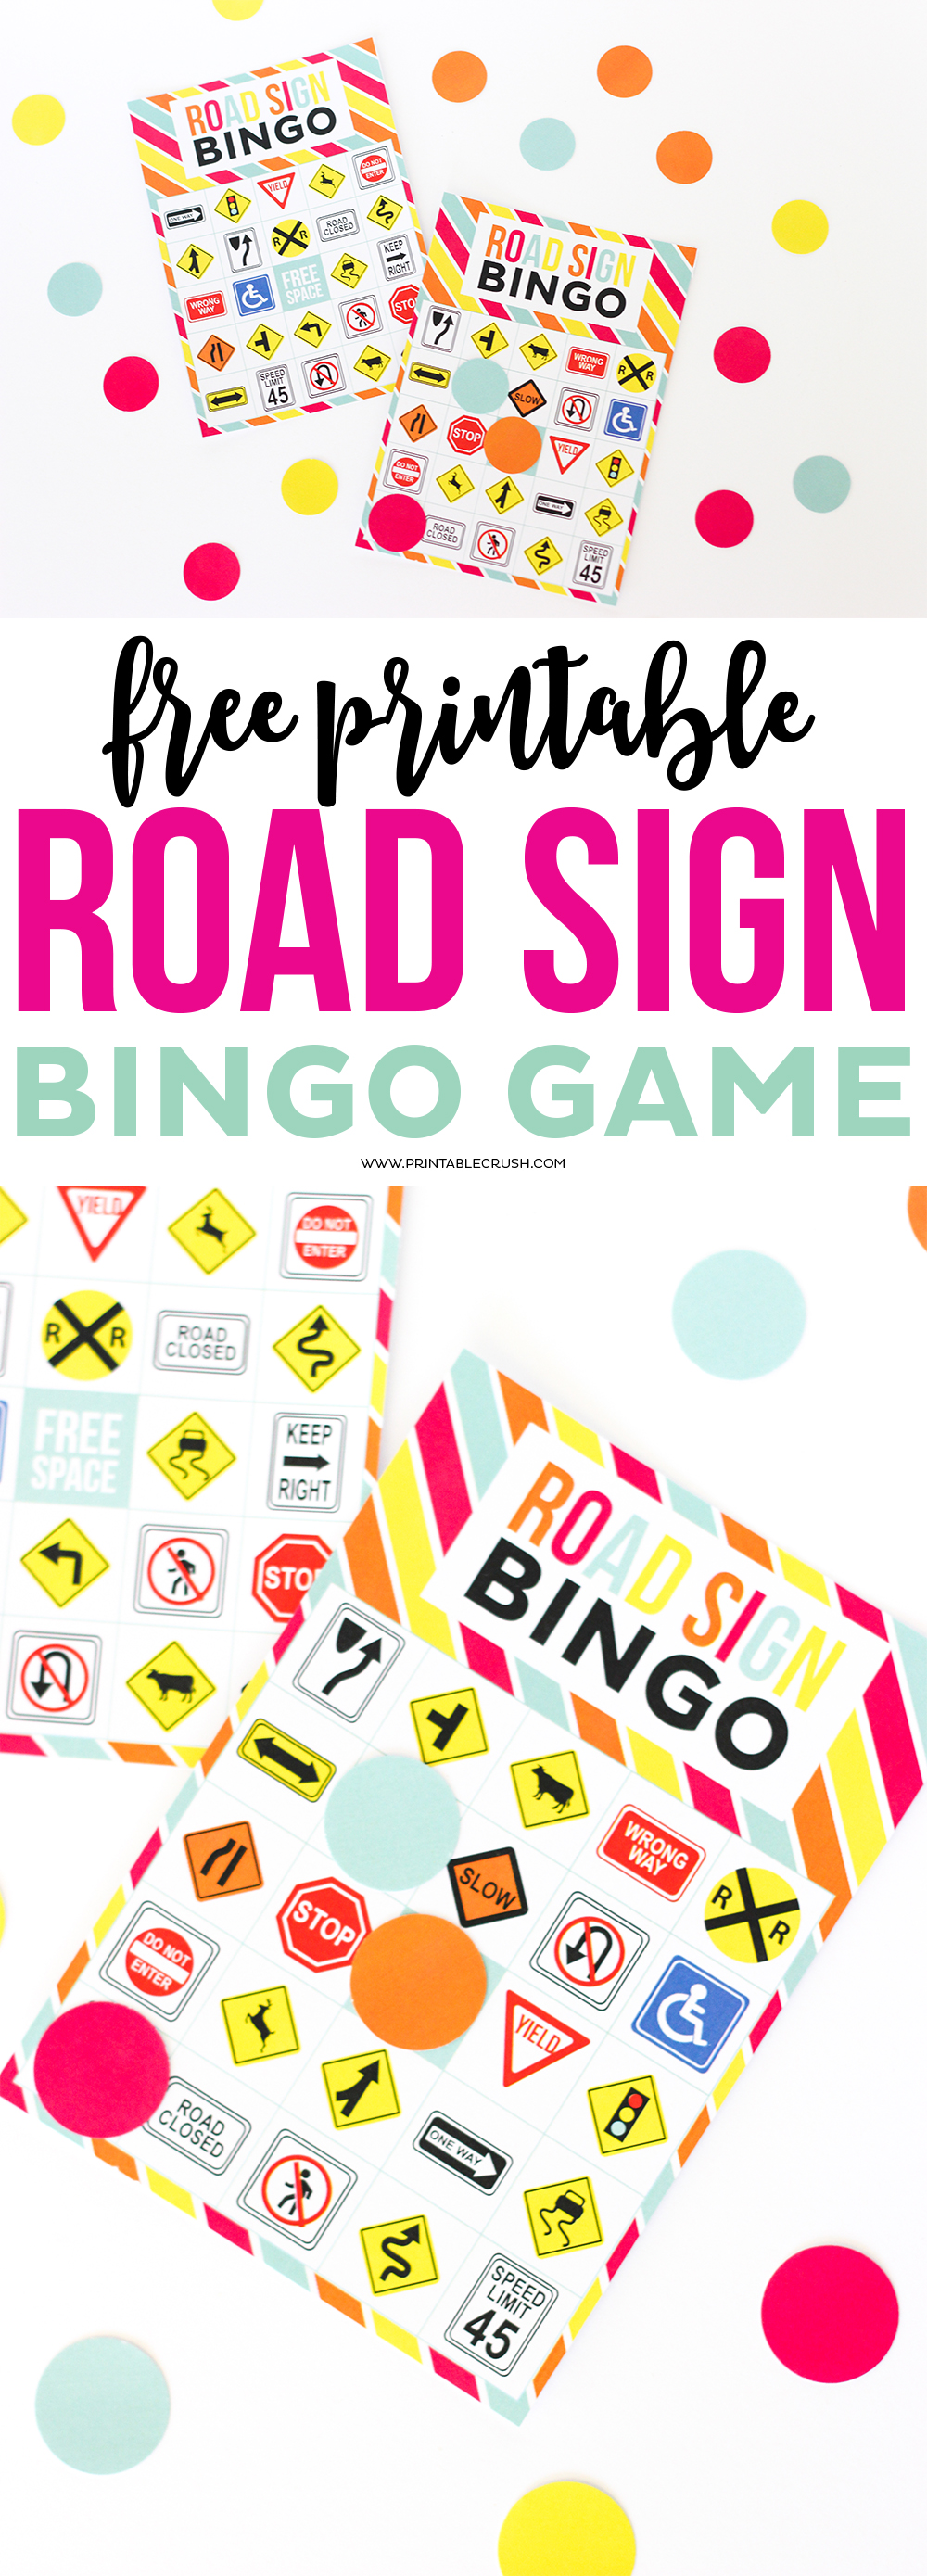 Free Printable Road Sign Bingo Game Printable Crush